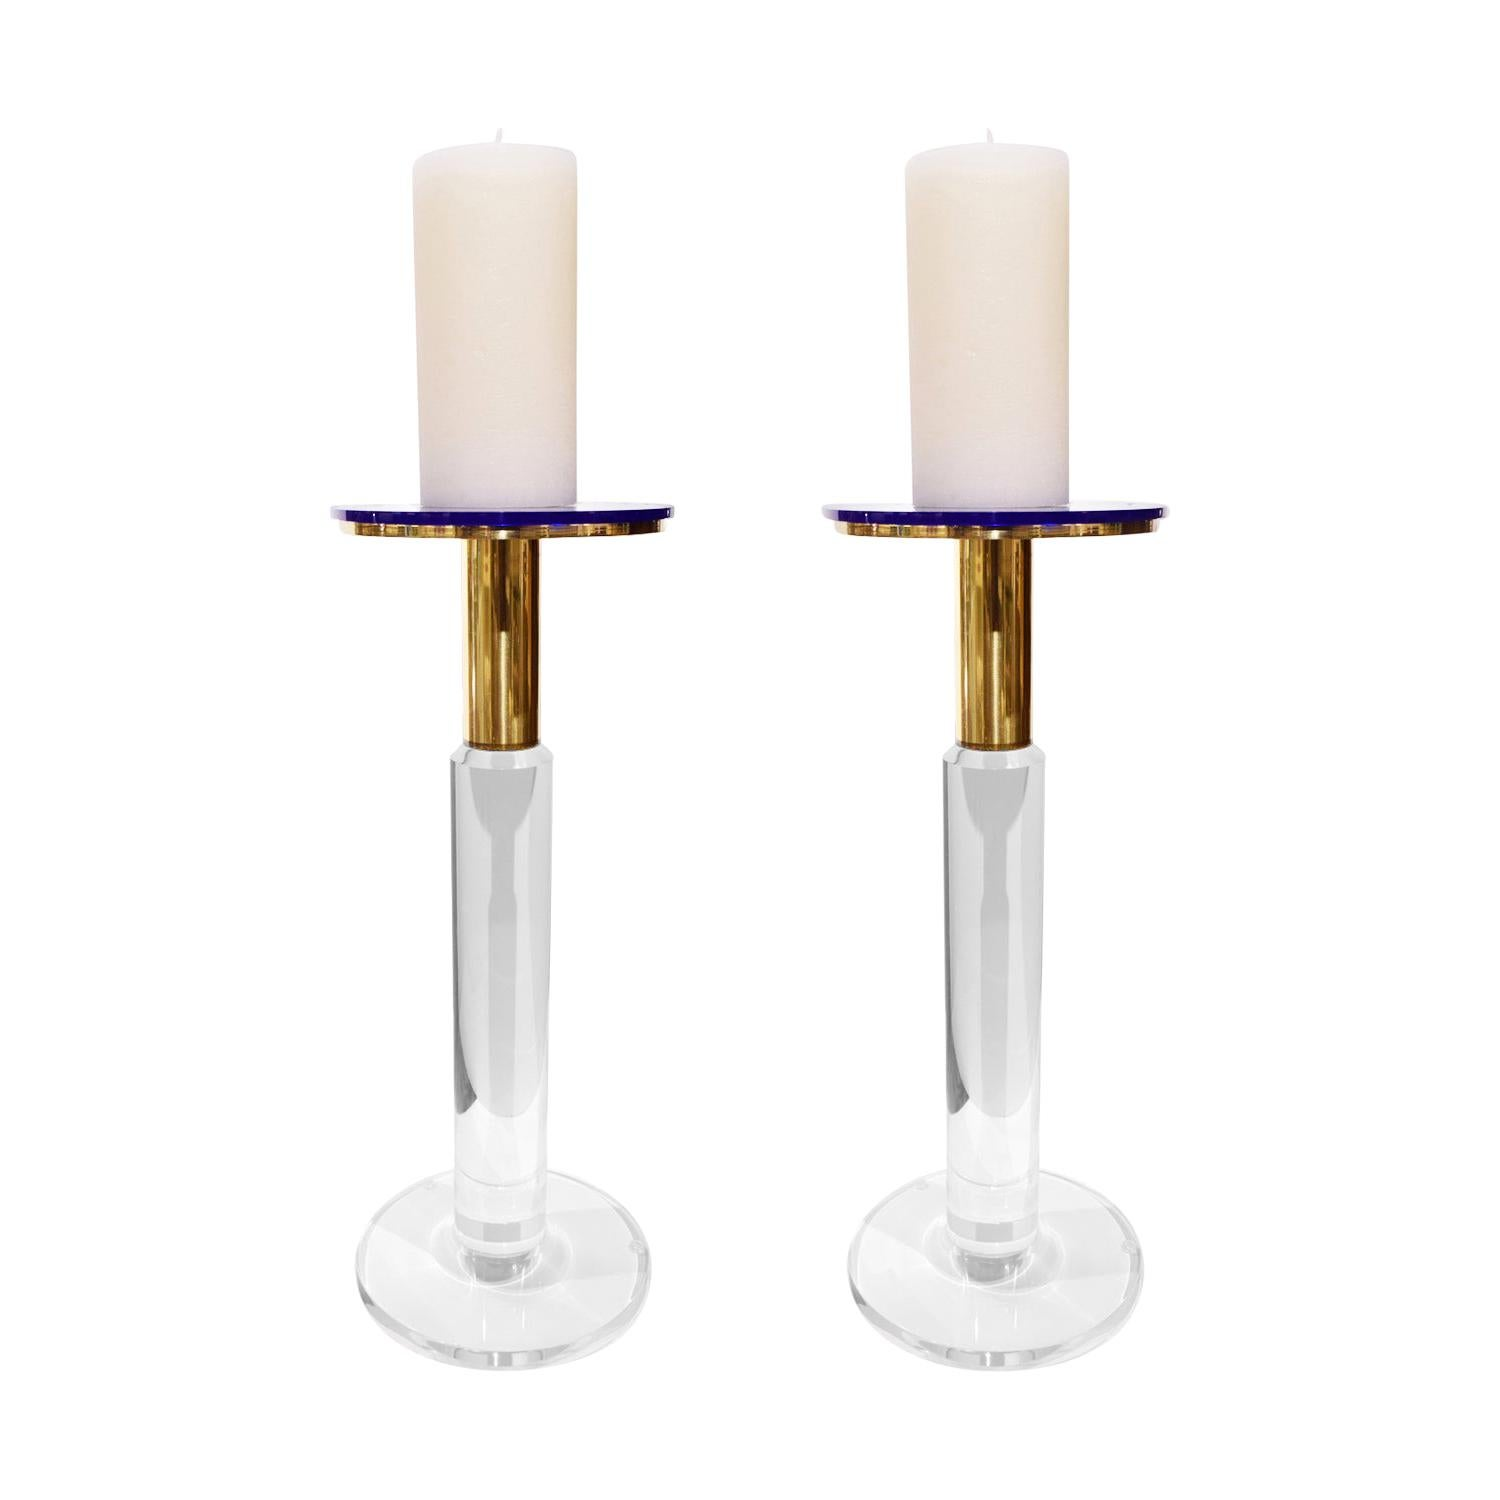 Karl Springer Rare Prototype Candleholders in Lucite and Brass circa 1985, Pair